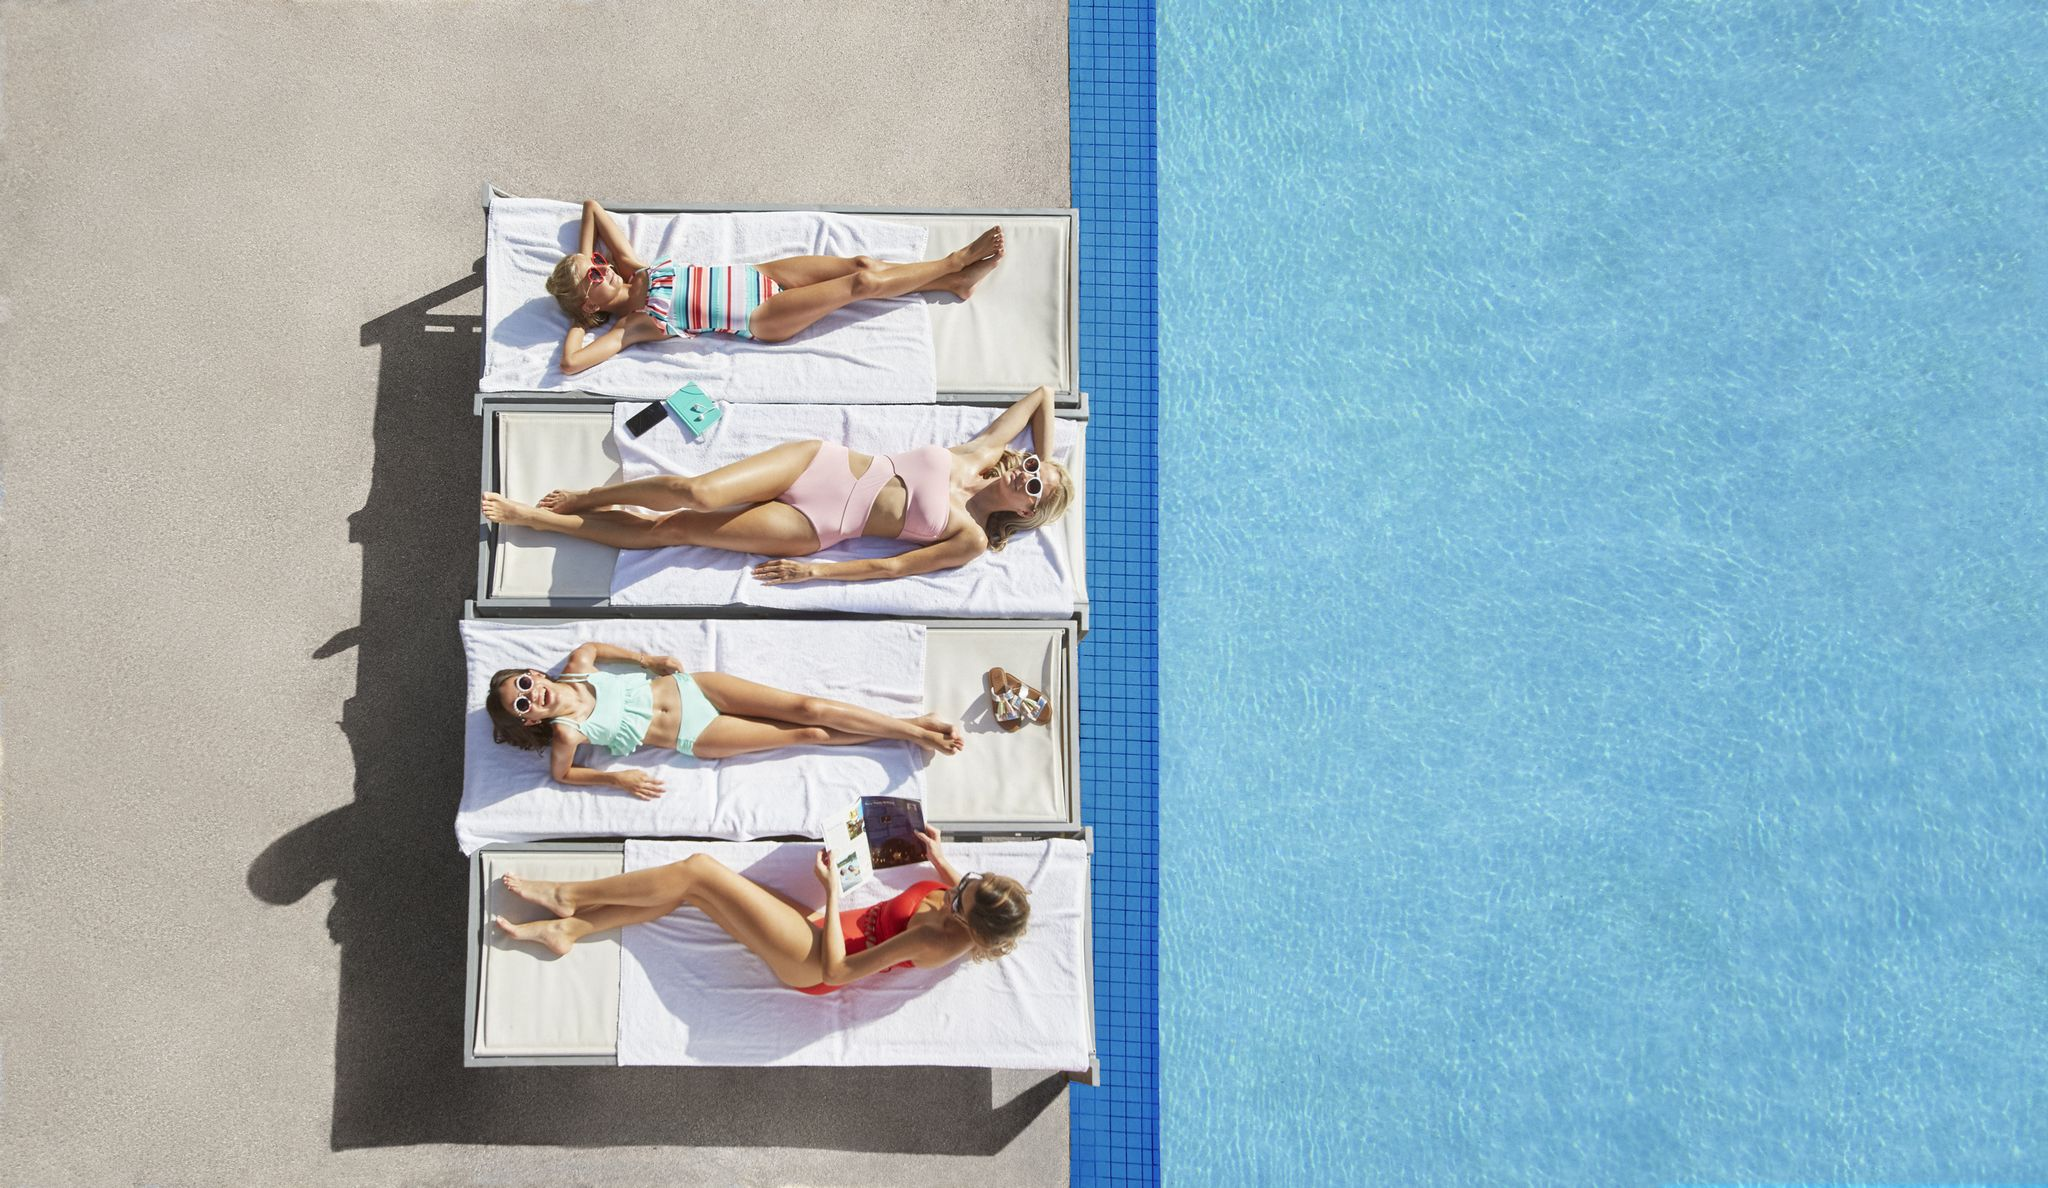 Four Women Sunbathing by the Pool at the Shoreline at Solé Mia Luxury Apartments in North Miami